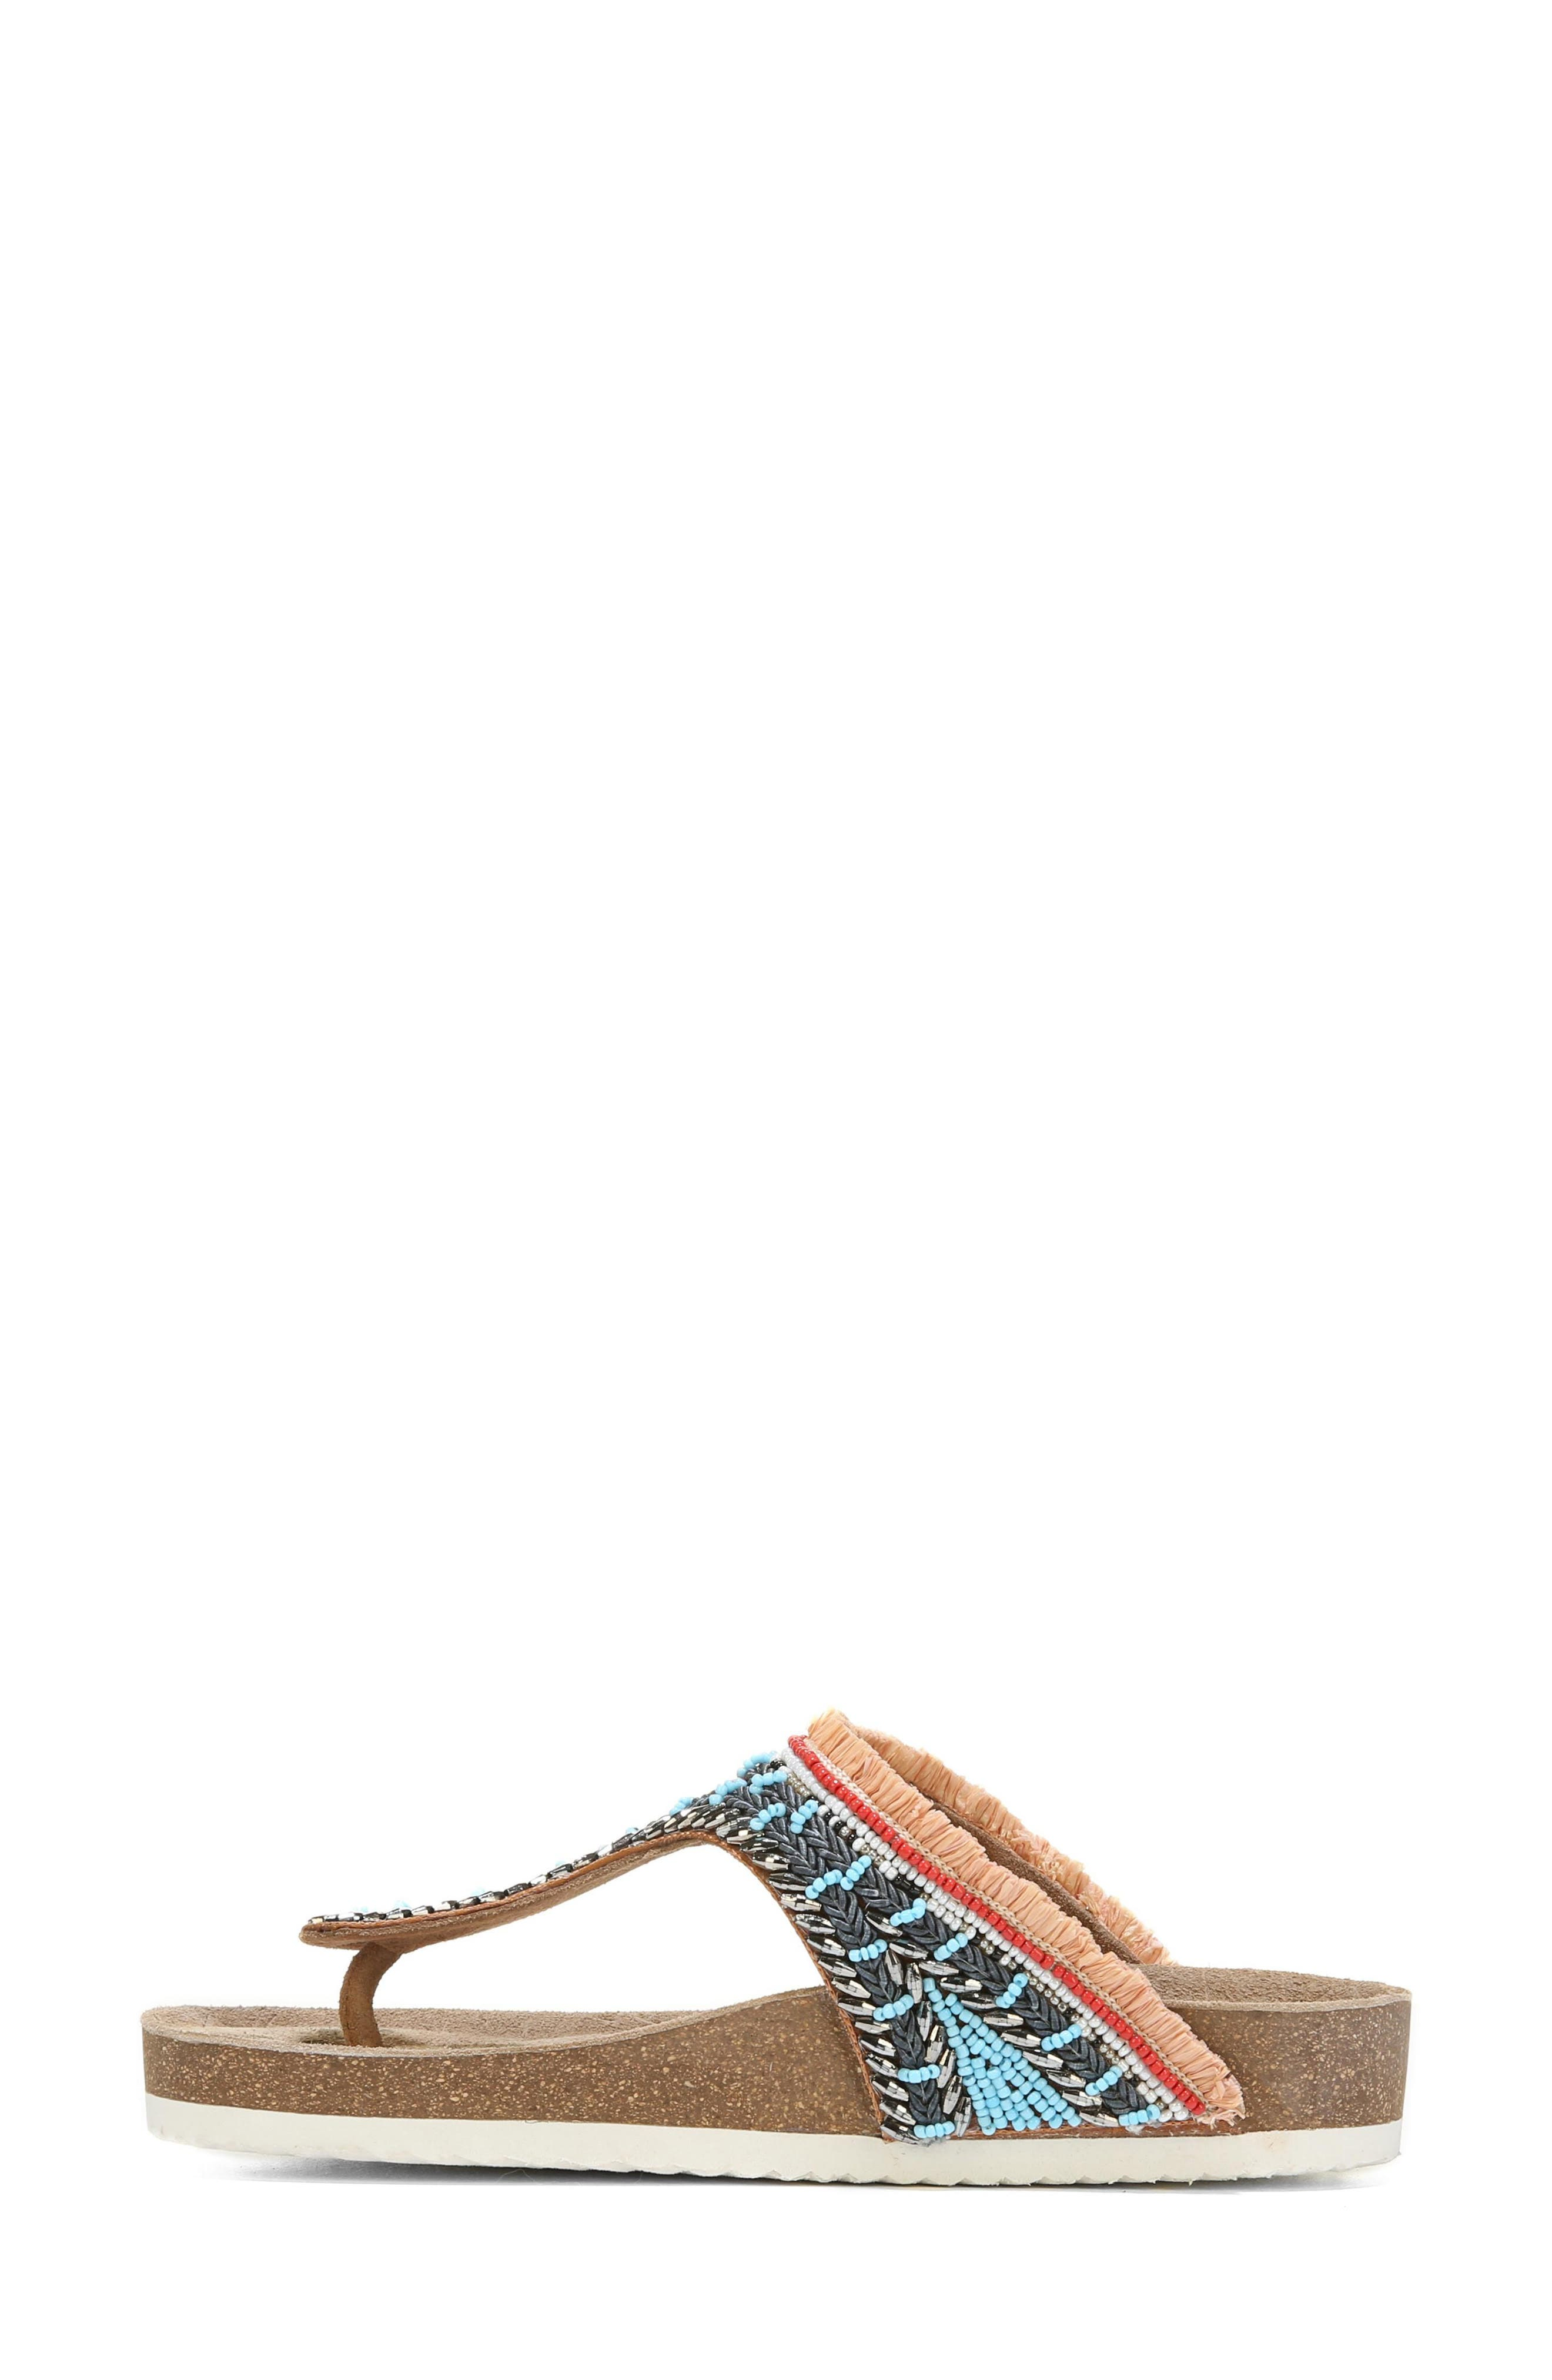 Olivie Beaded Flip Flop,                             Alternate thumbnail 3, color,                             SADDLE/ BLUE MULTI